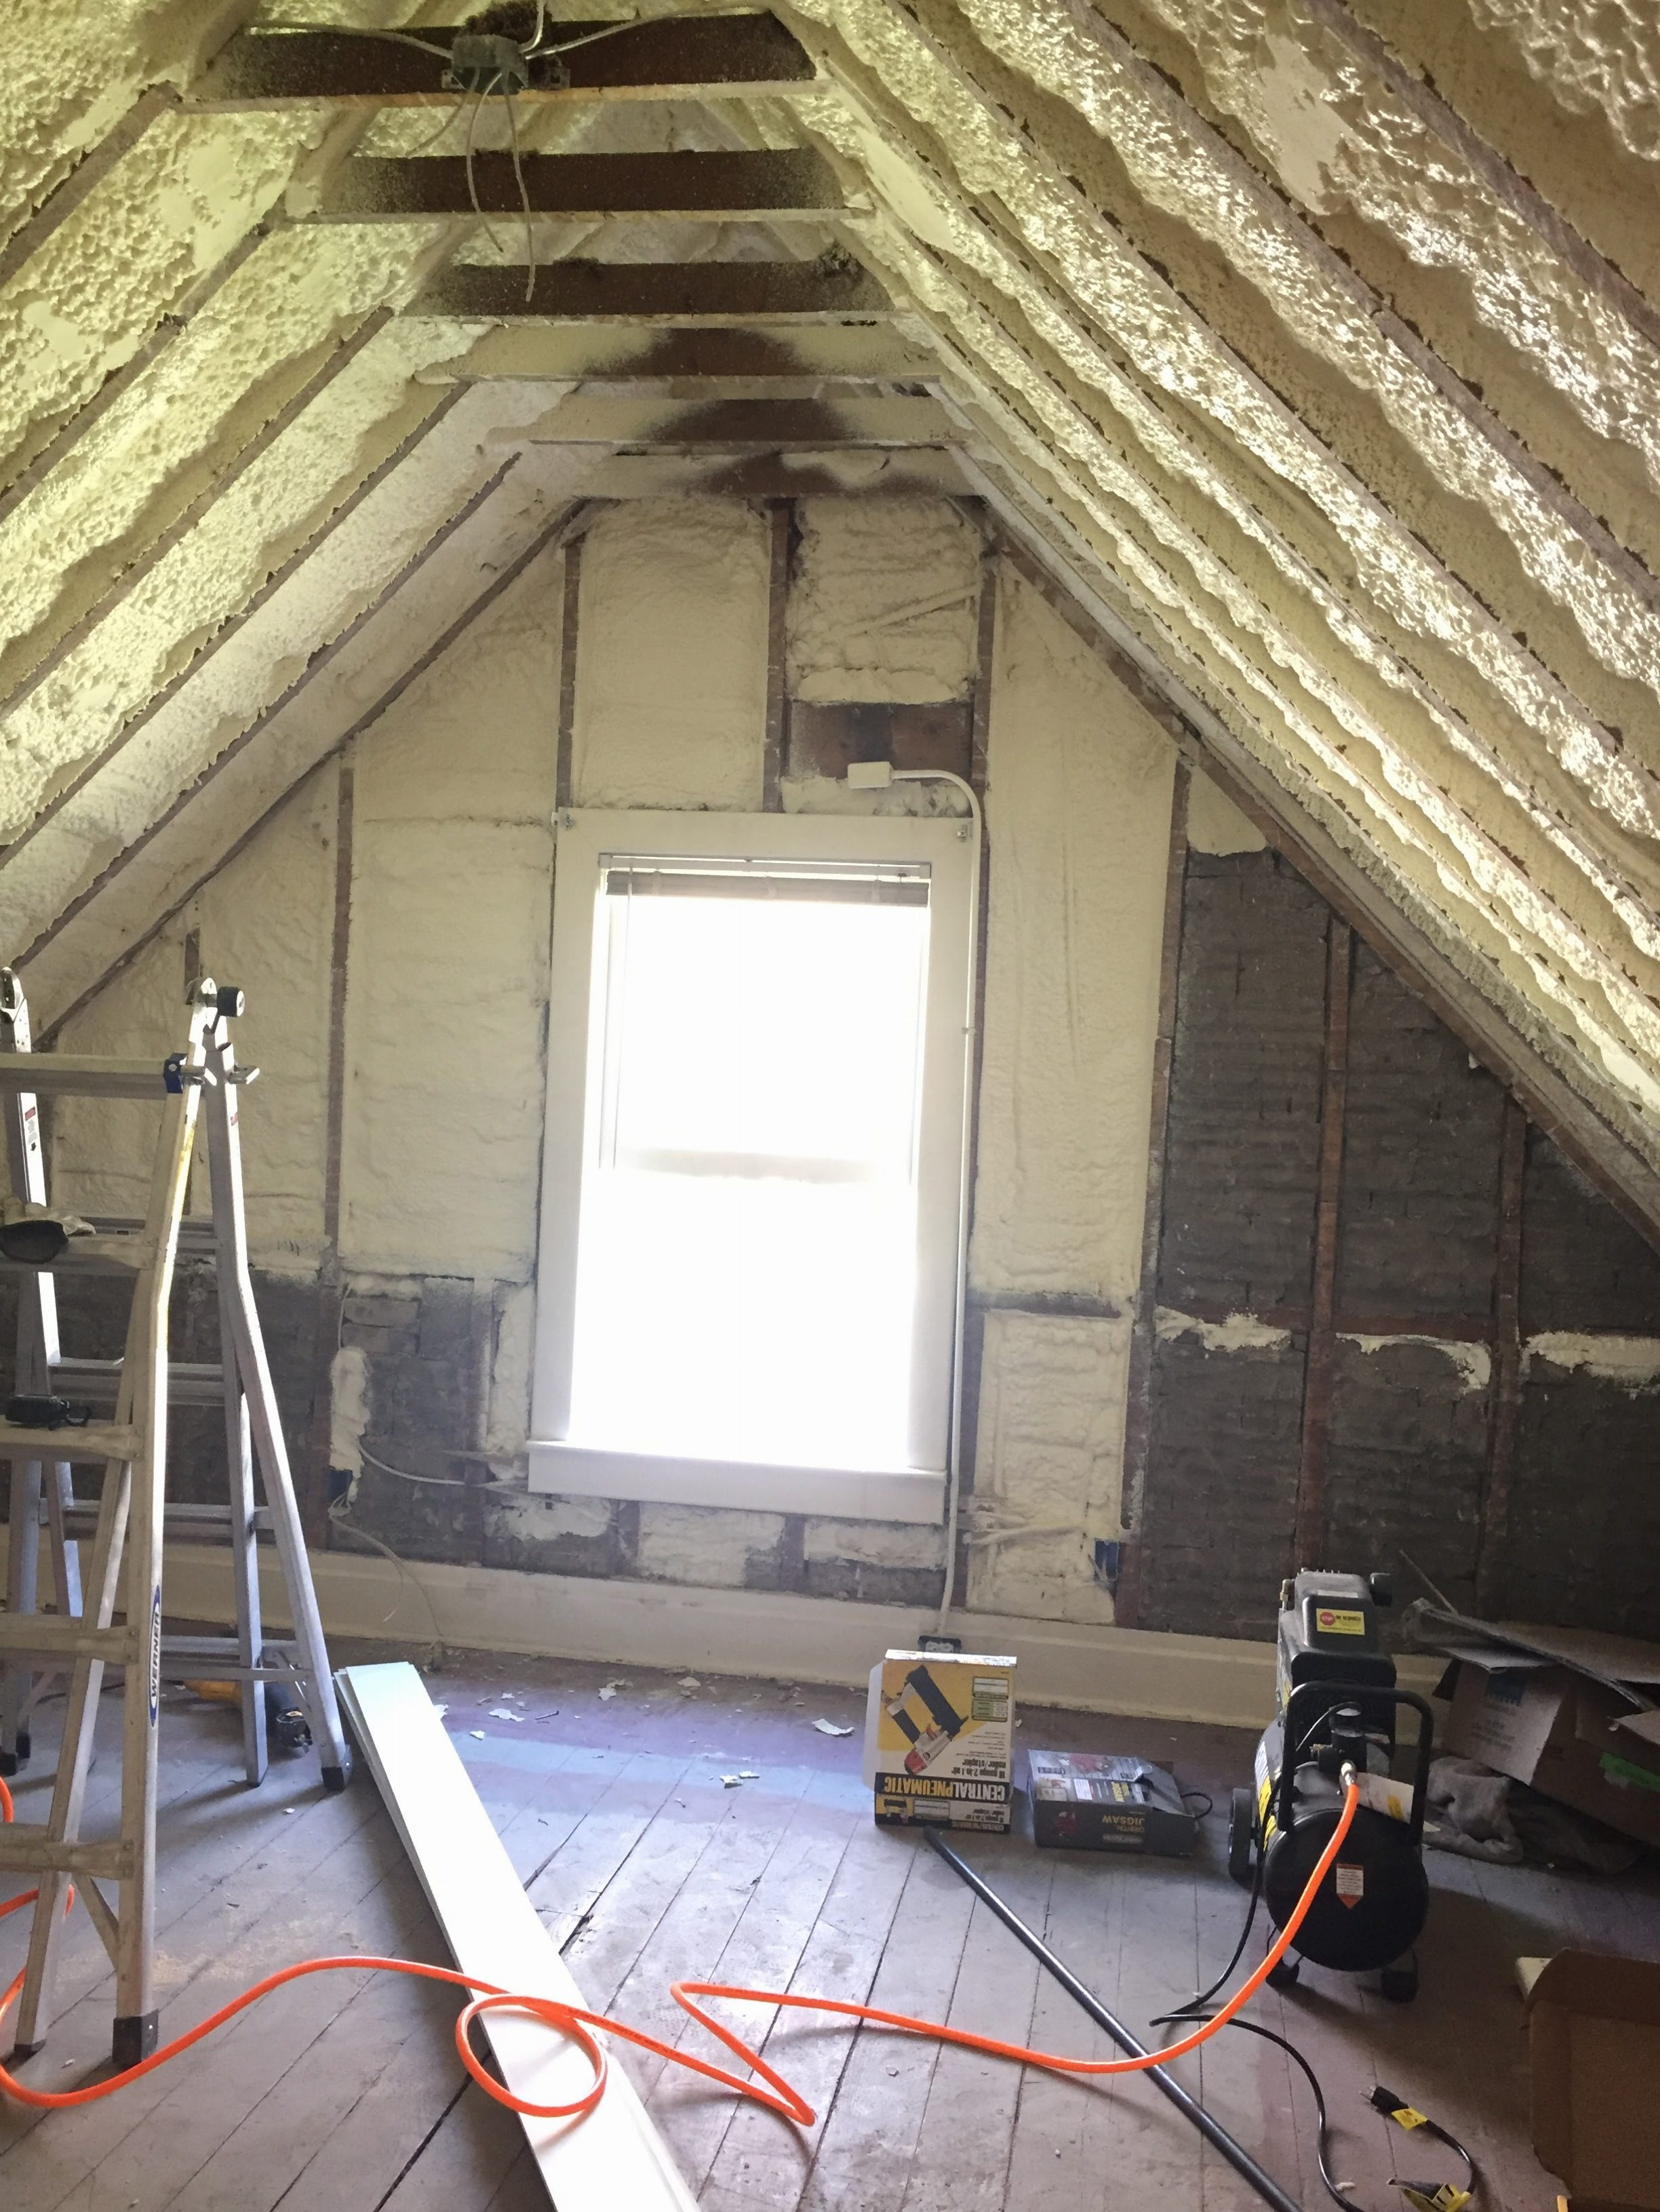 Spray Foam Insulation in the Attic Bedroom Rafters